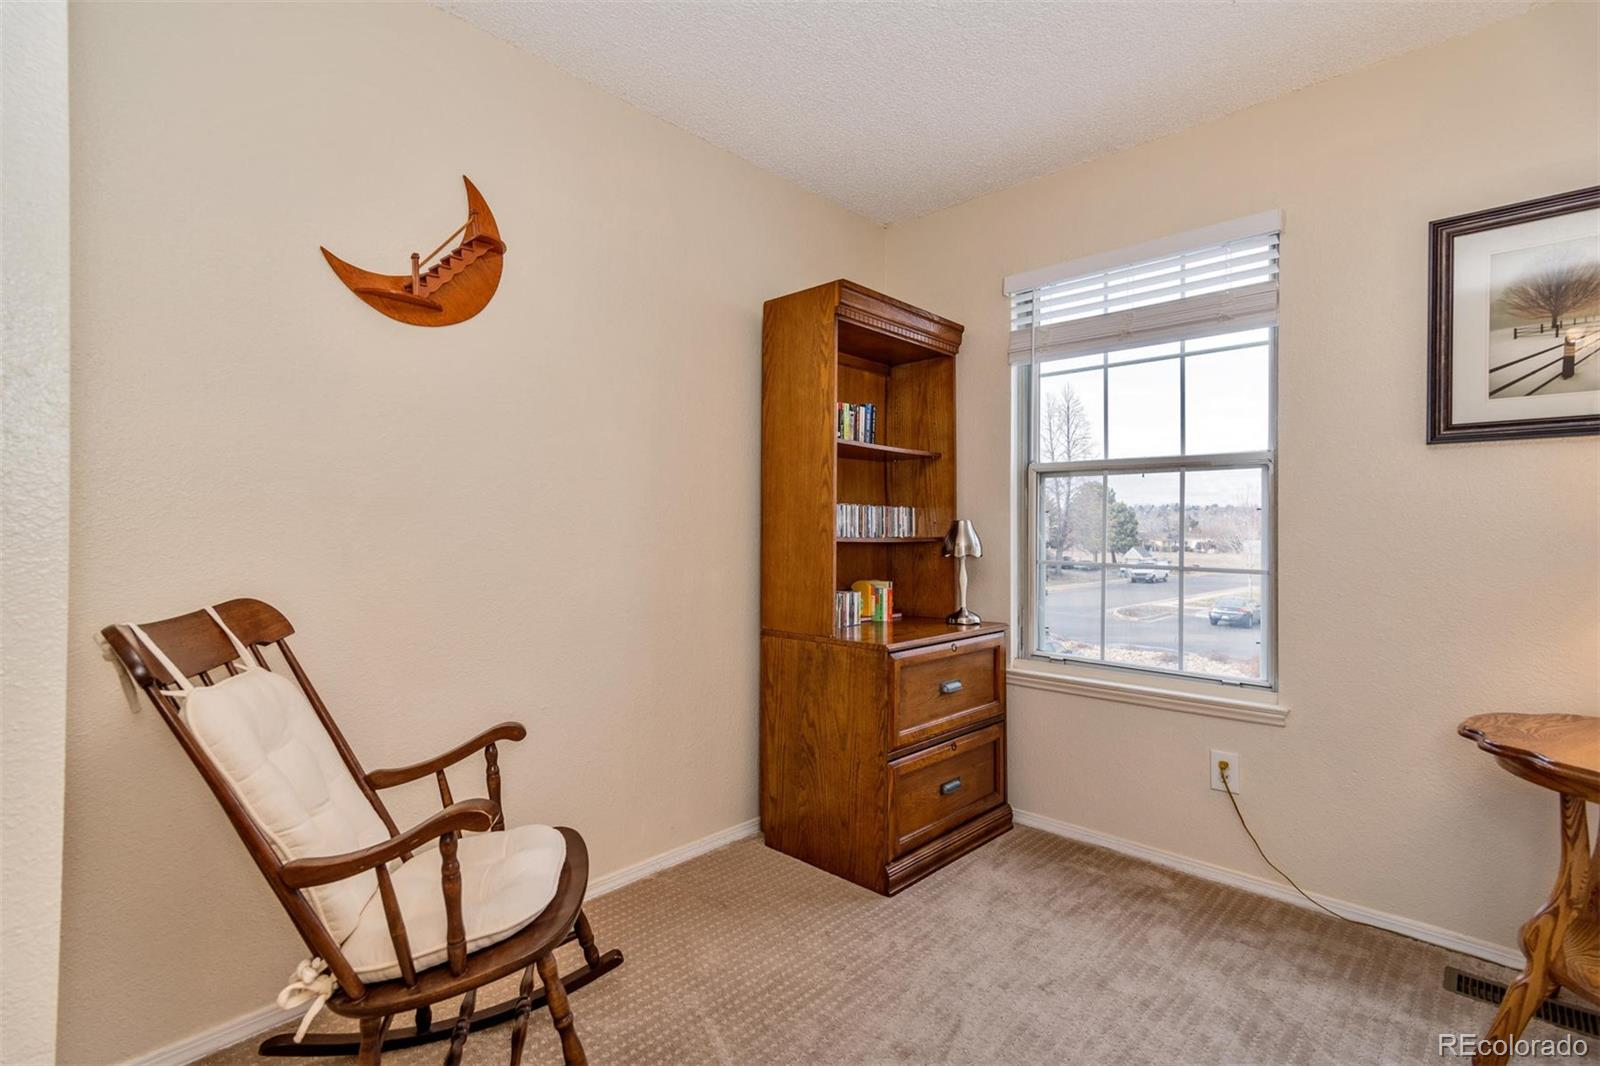 MLS# 6379353 - 18 - 8846 W Dartmouth Place, Lakewood, CO 80227